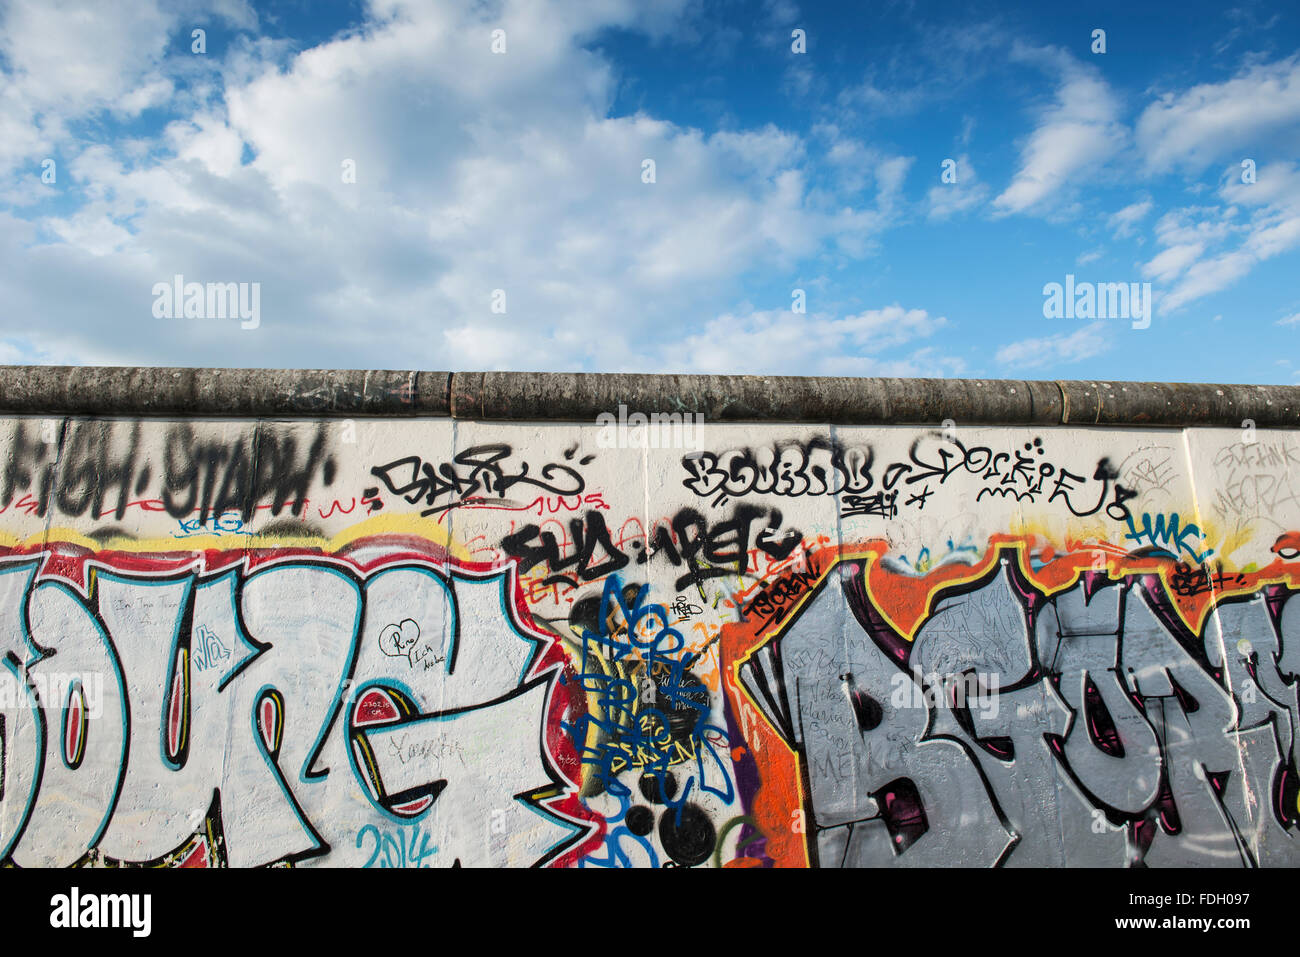 Artwork on the Berlin Wall at the East Side Gallery, Germany - Stock Image